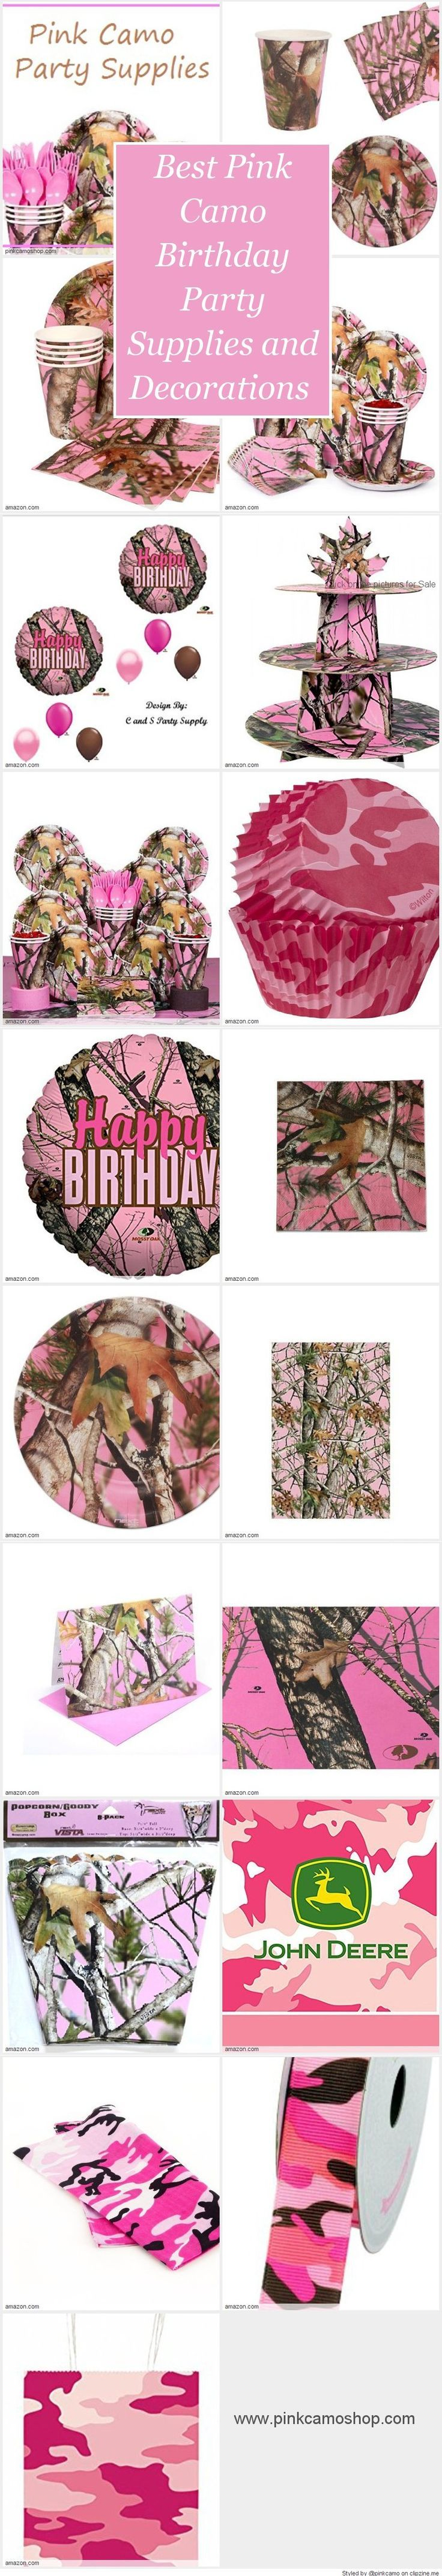 53 best camo party ideas images on pinterest for Pink camo decorations